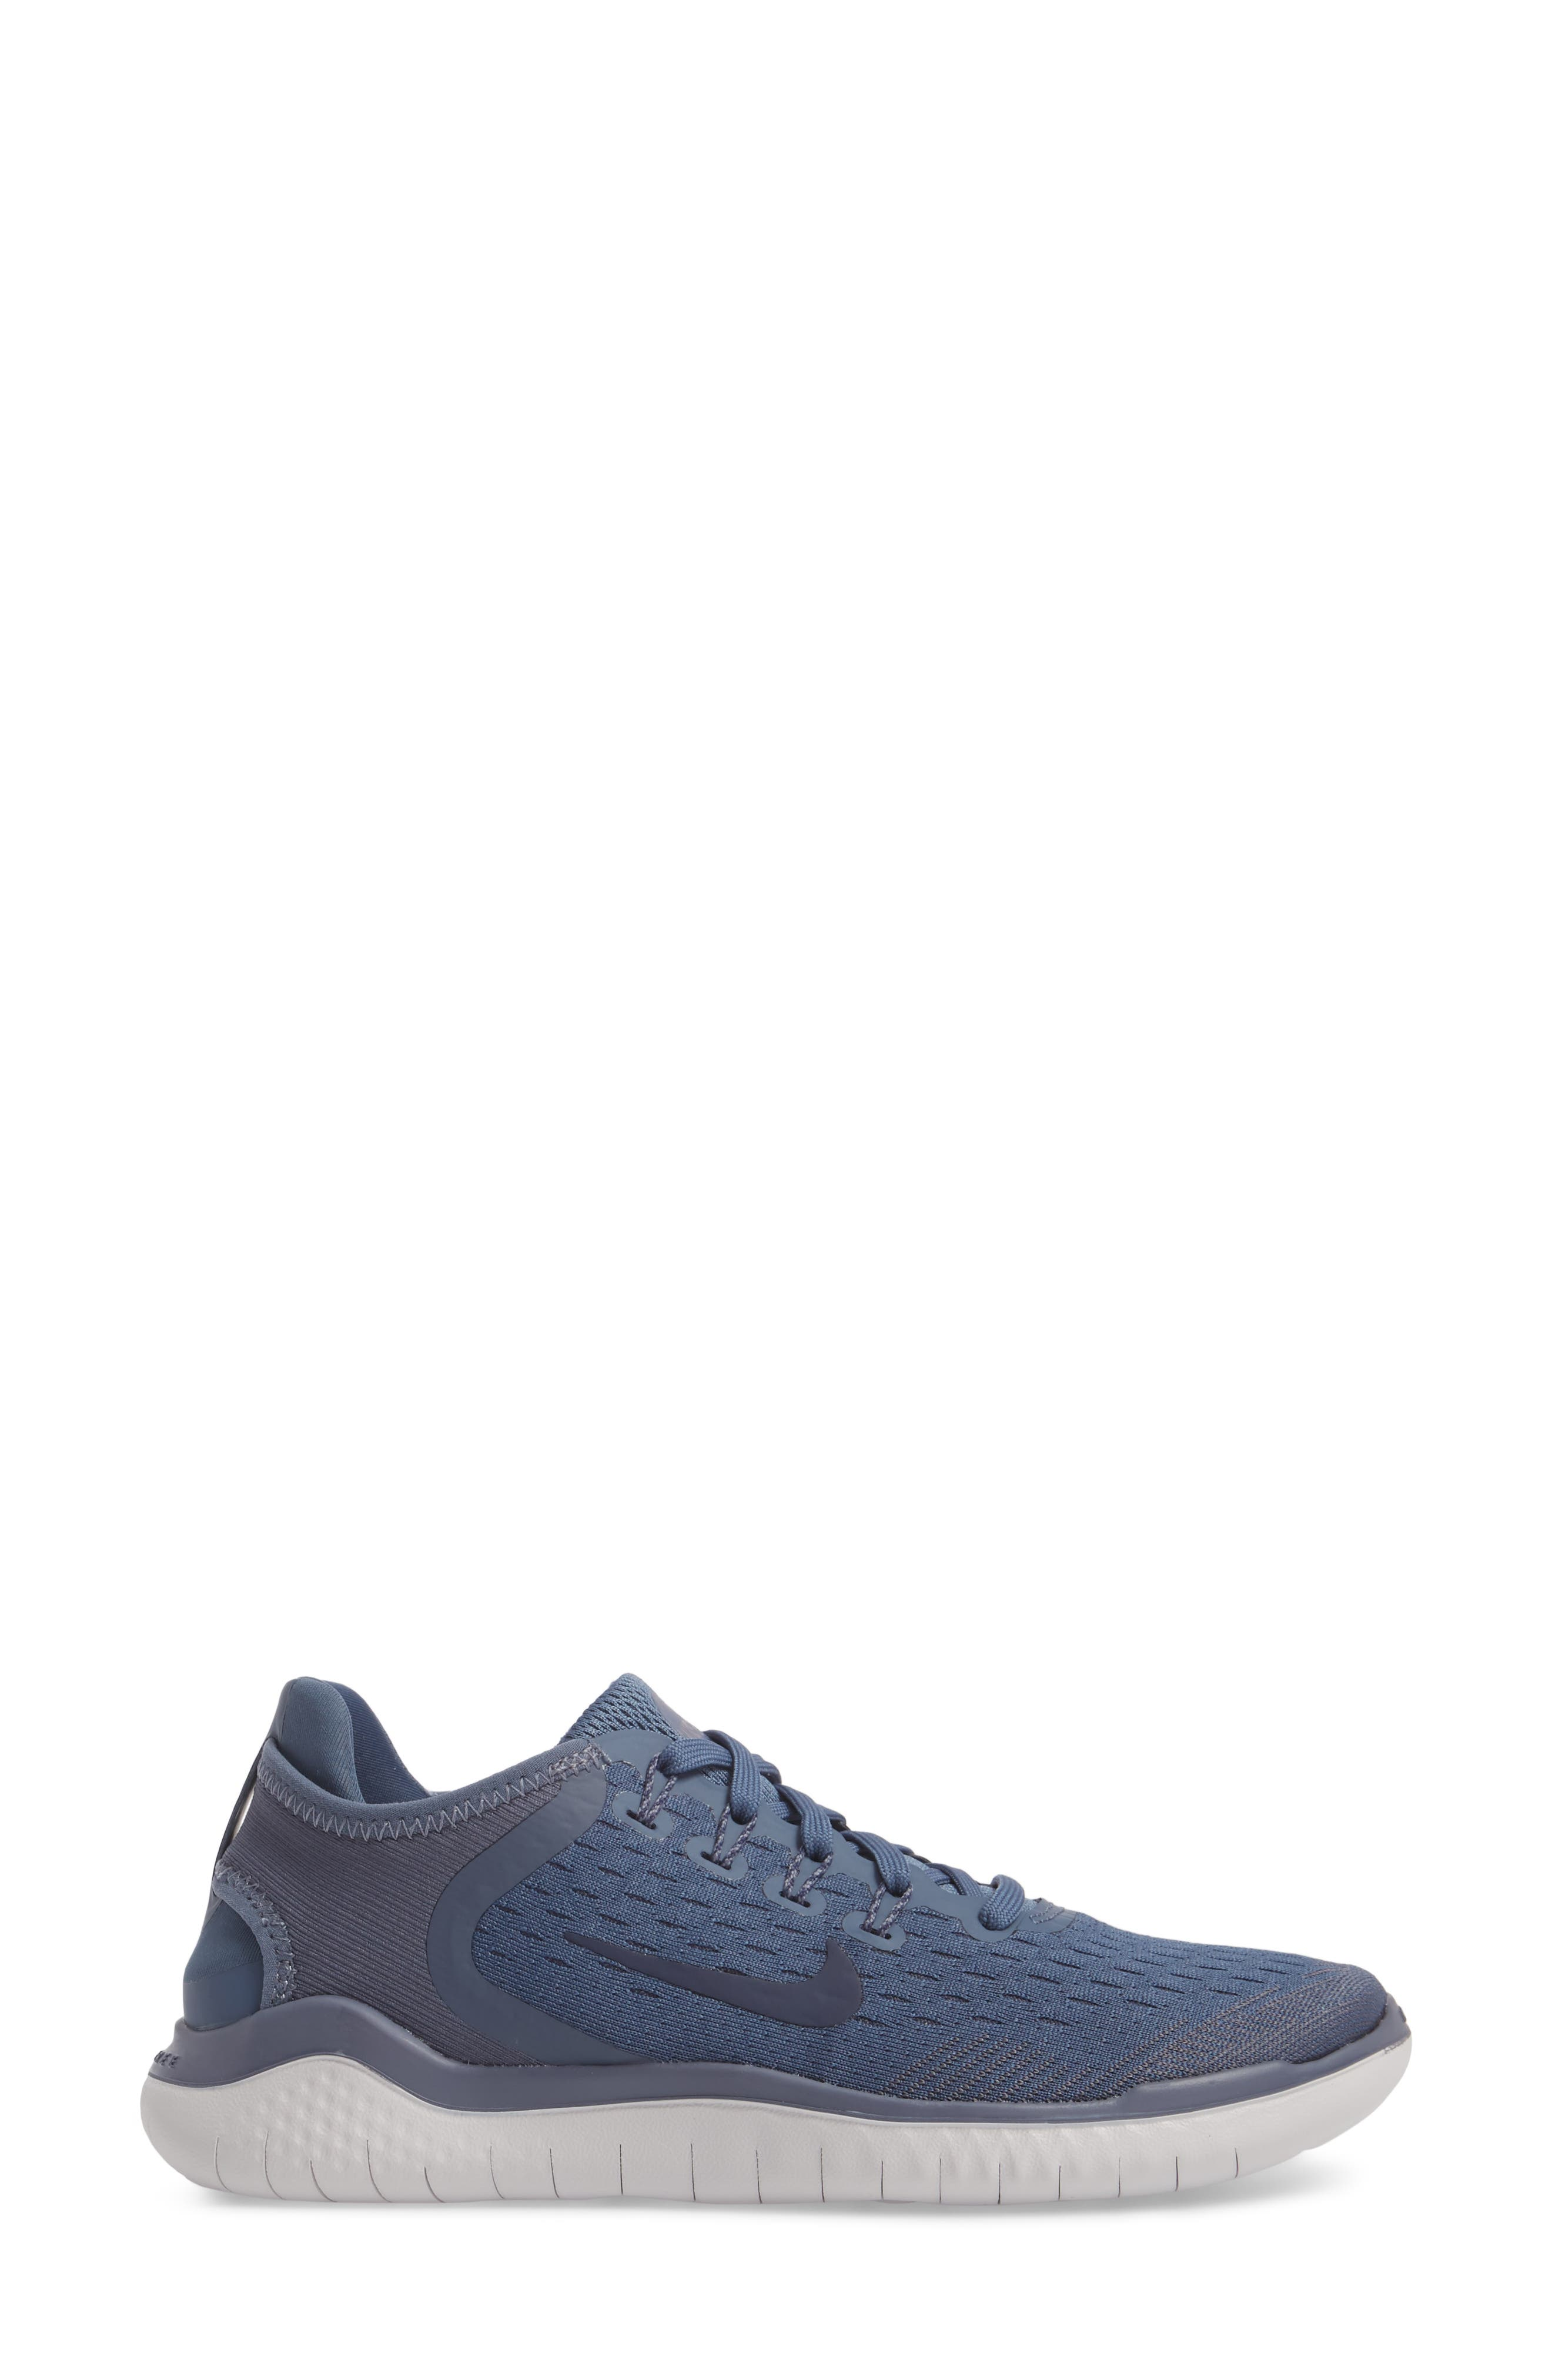 Free RN 2018 Running Shoe,                             Alternate thumbnail 3, color,                             Diffused Blue/ Neutral Indigo